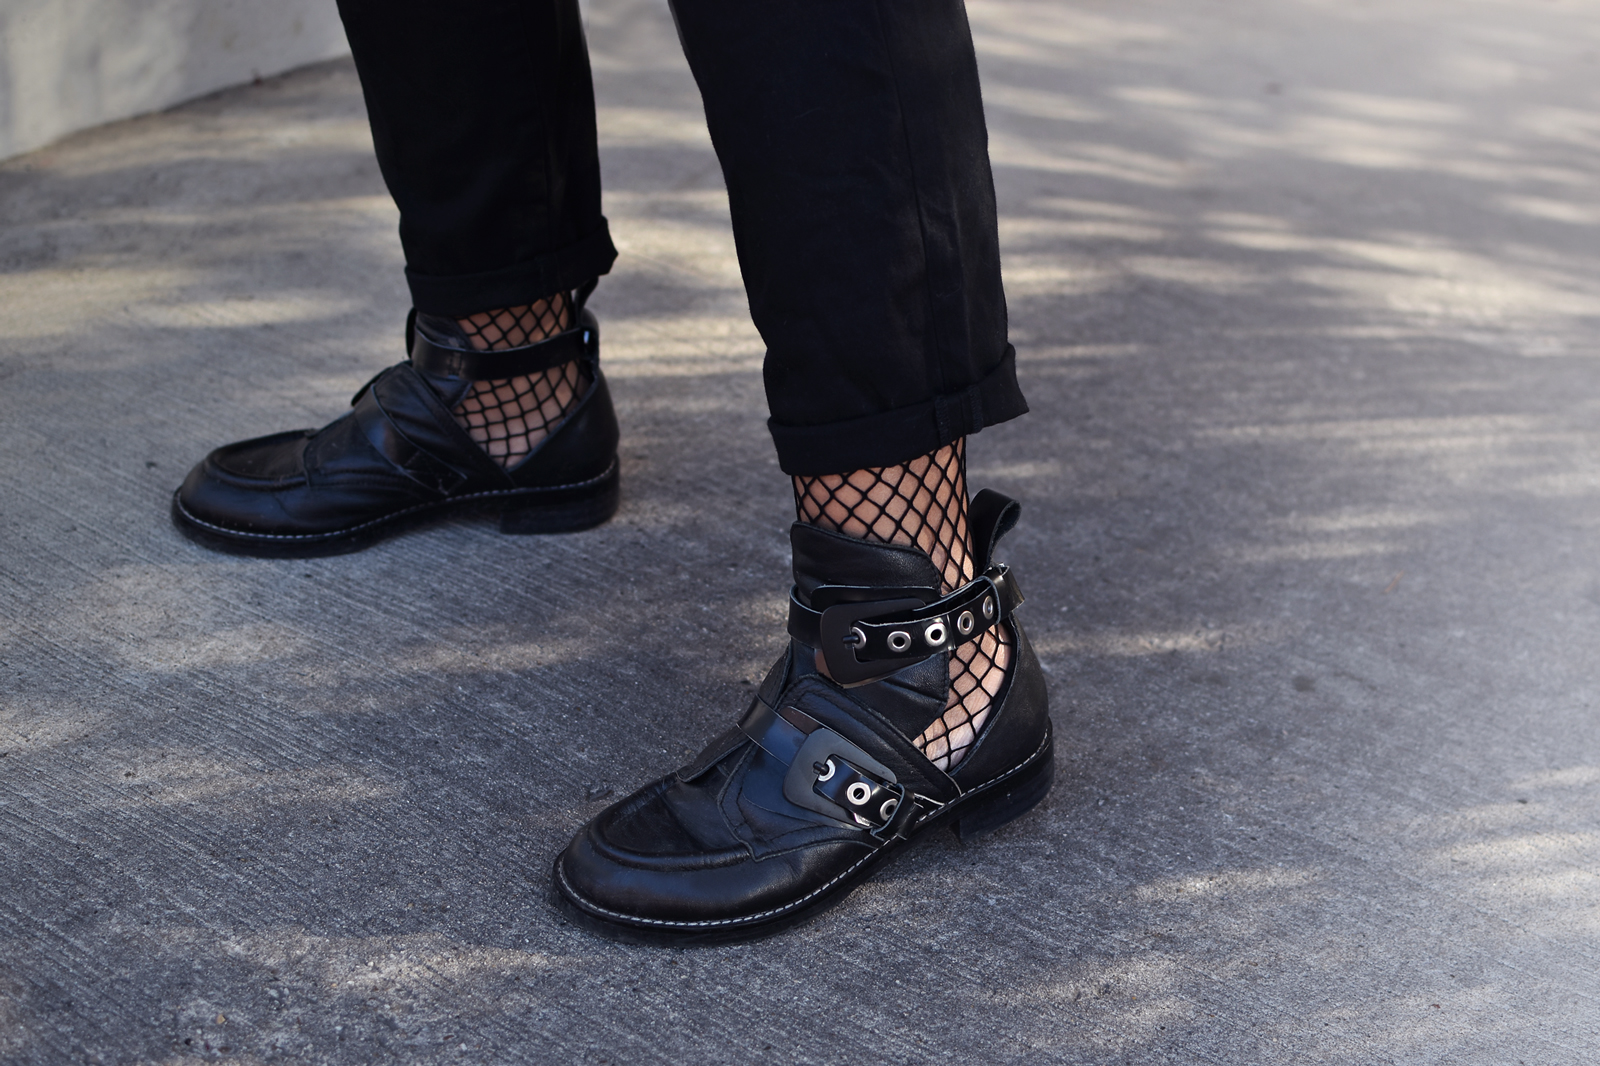 ON THE STREET, FISHNET SOCKS